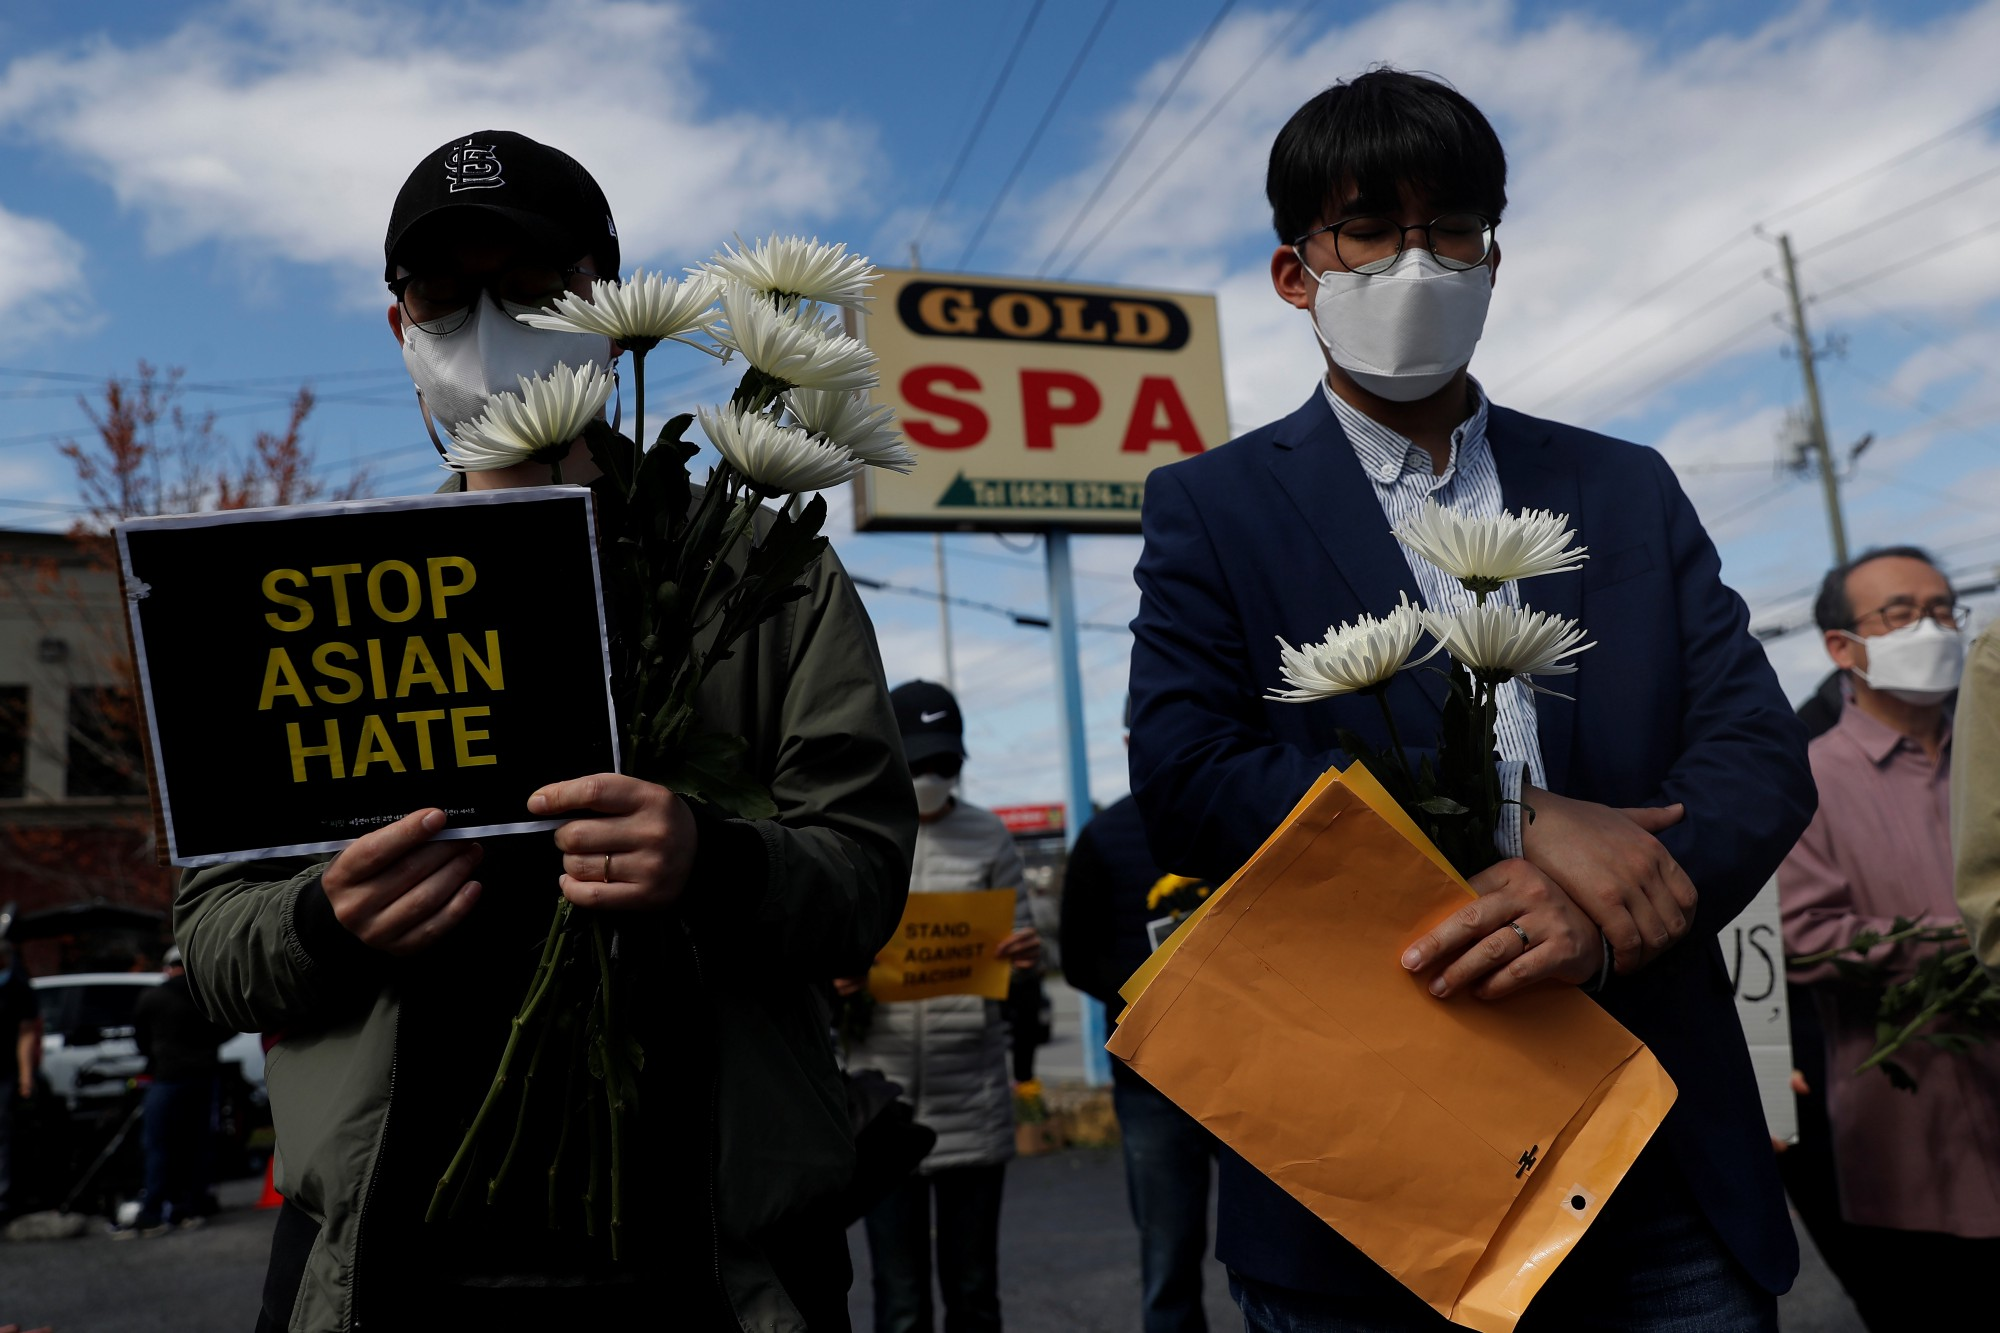 Men hold flowers during a vigil at a makeshift memorial outside the Gold Spa following the deadly shootings in Atlanta, Georgia, March 21, 2021. Photo by Shannon Stapleton/Reuters